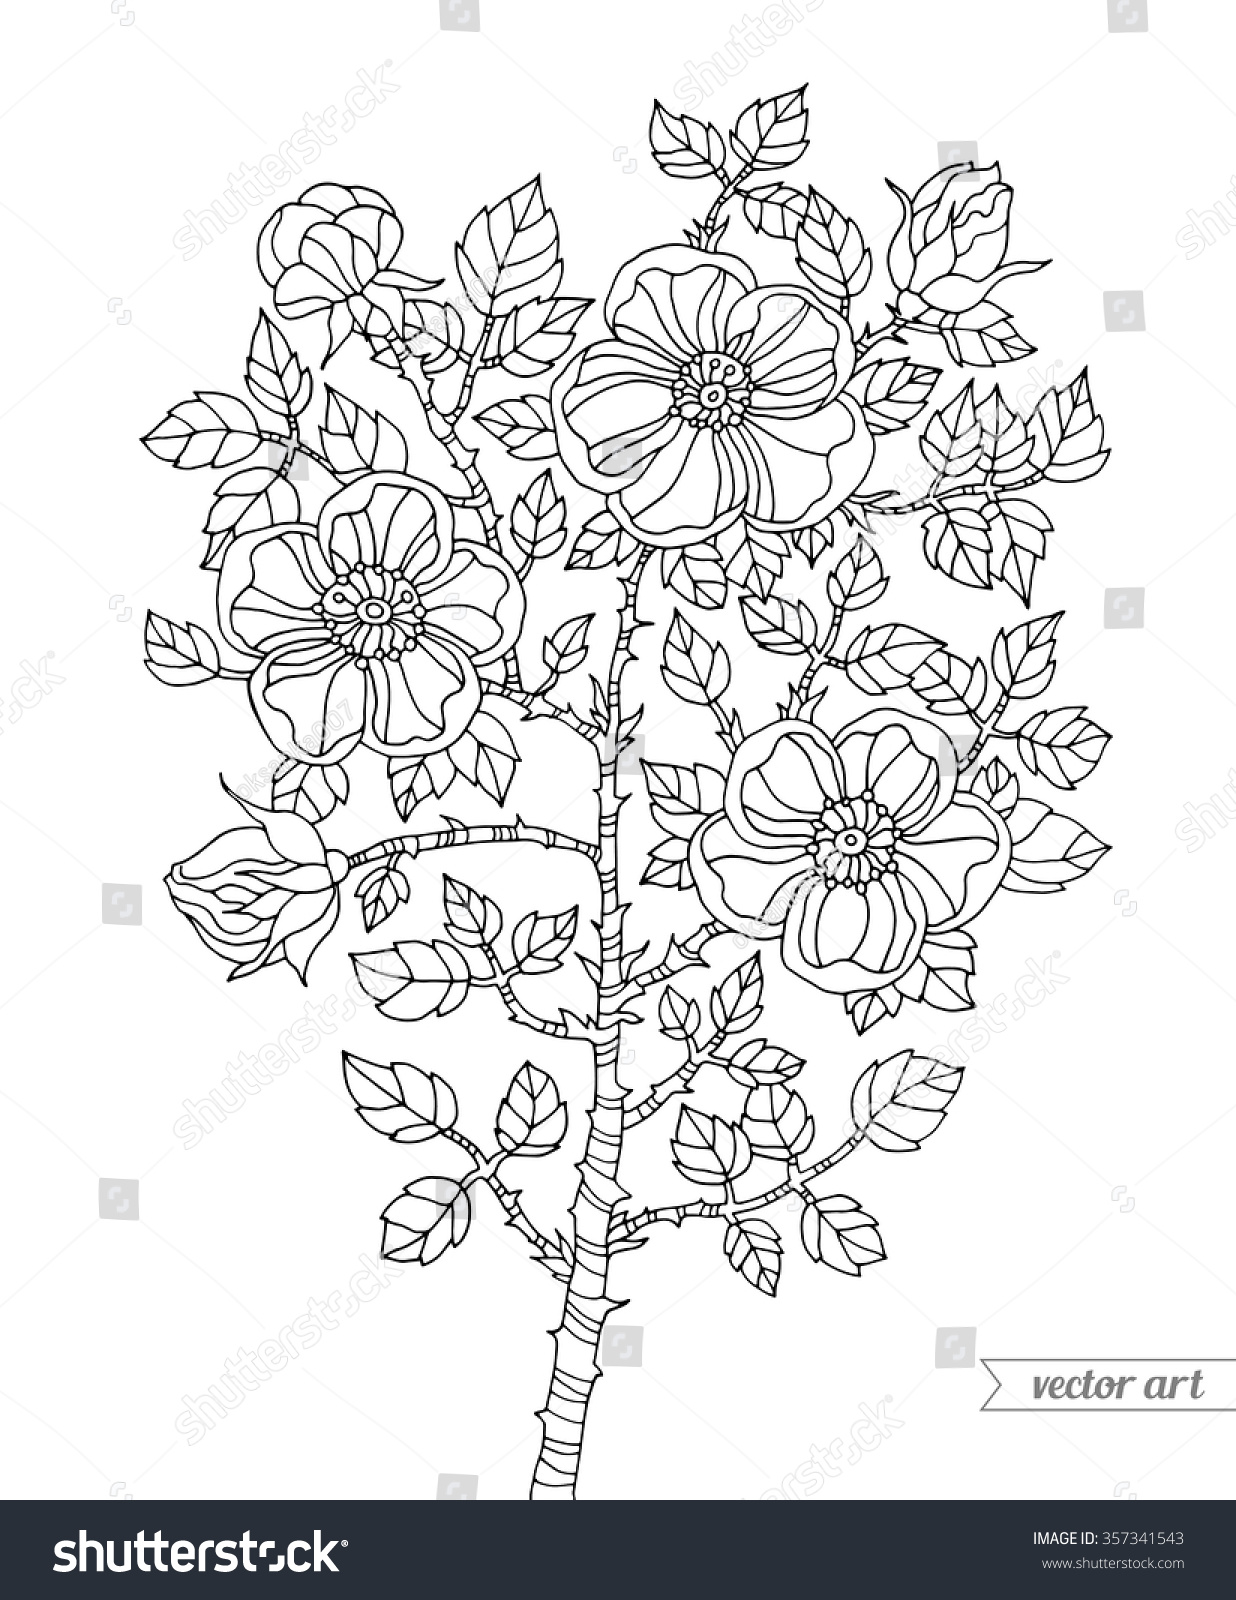 Botanical art coloring book - Botanical Vintage Vector Zentangle Coloring Book Page For Adult